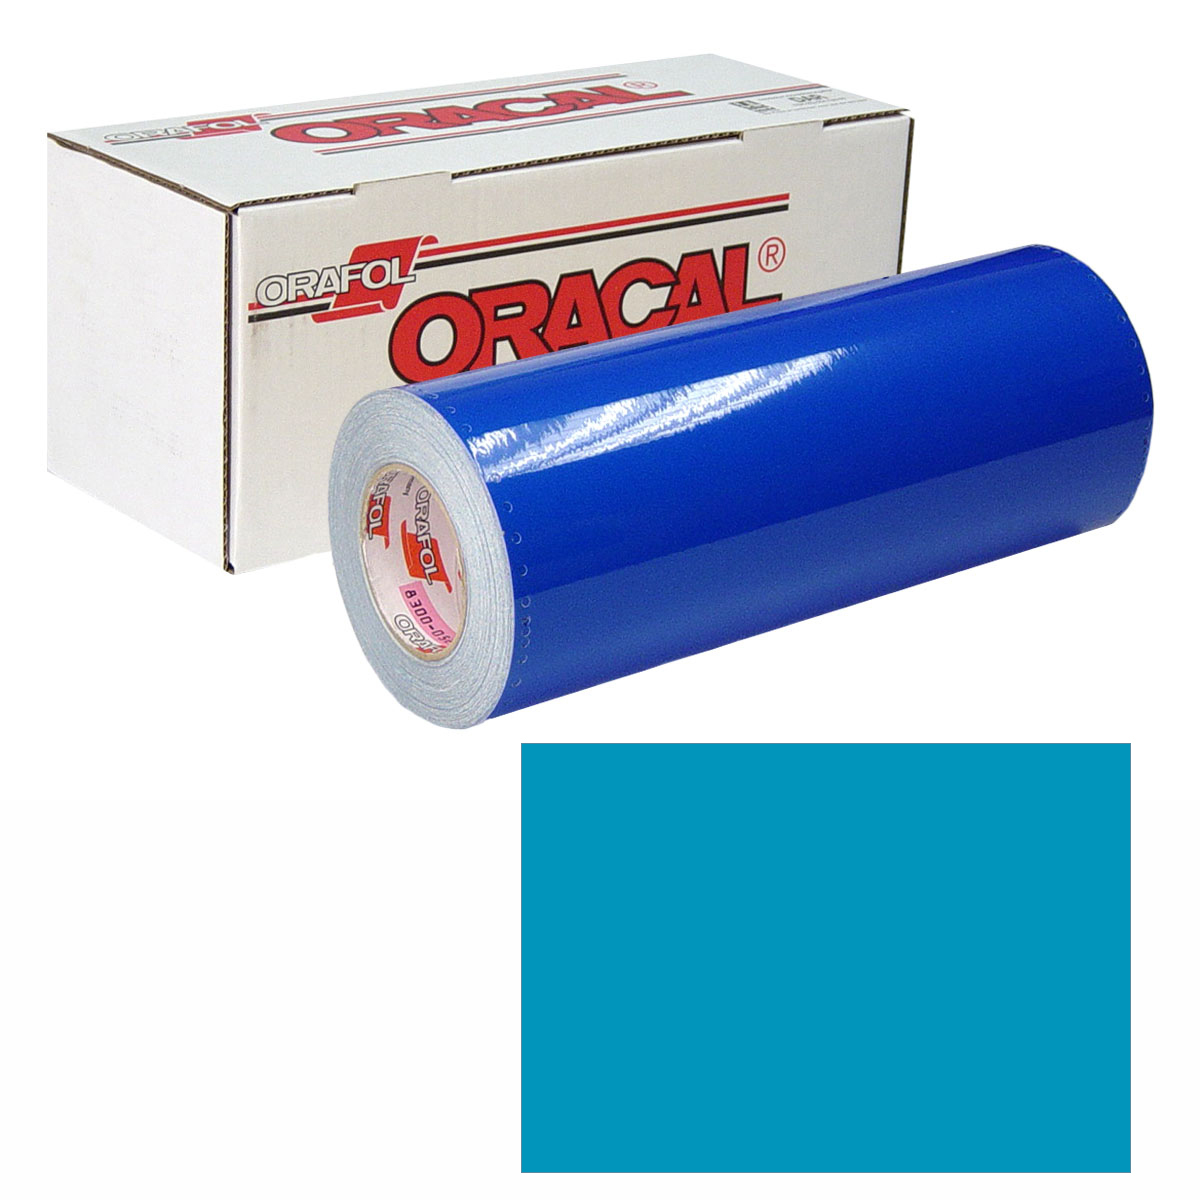 ORACAL 631 Unp 48in X 10yd 174 Teal